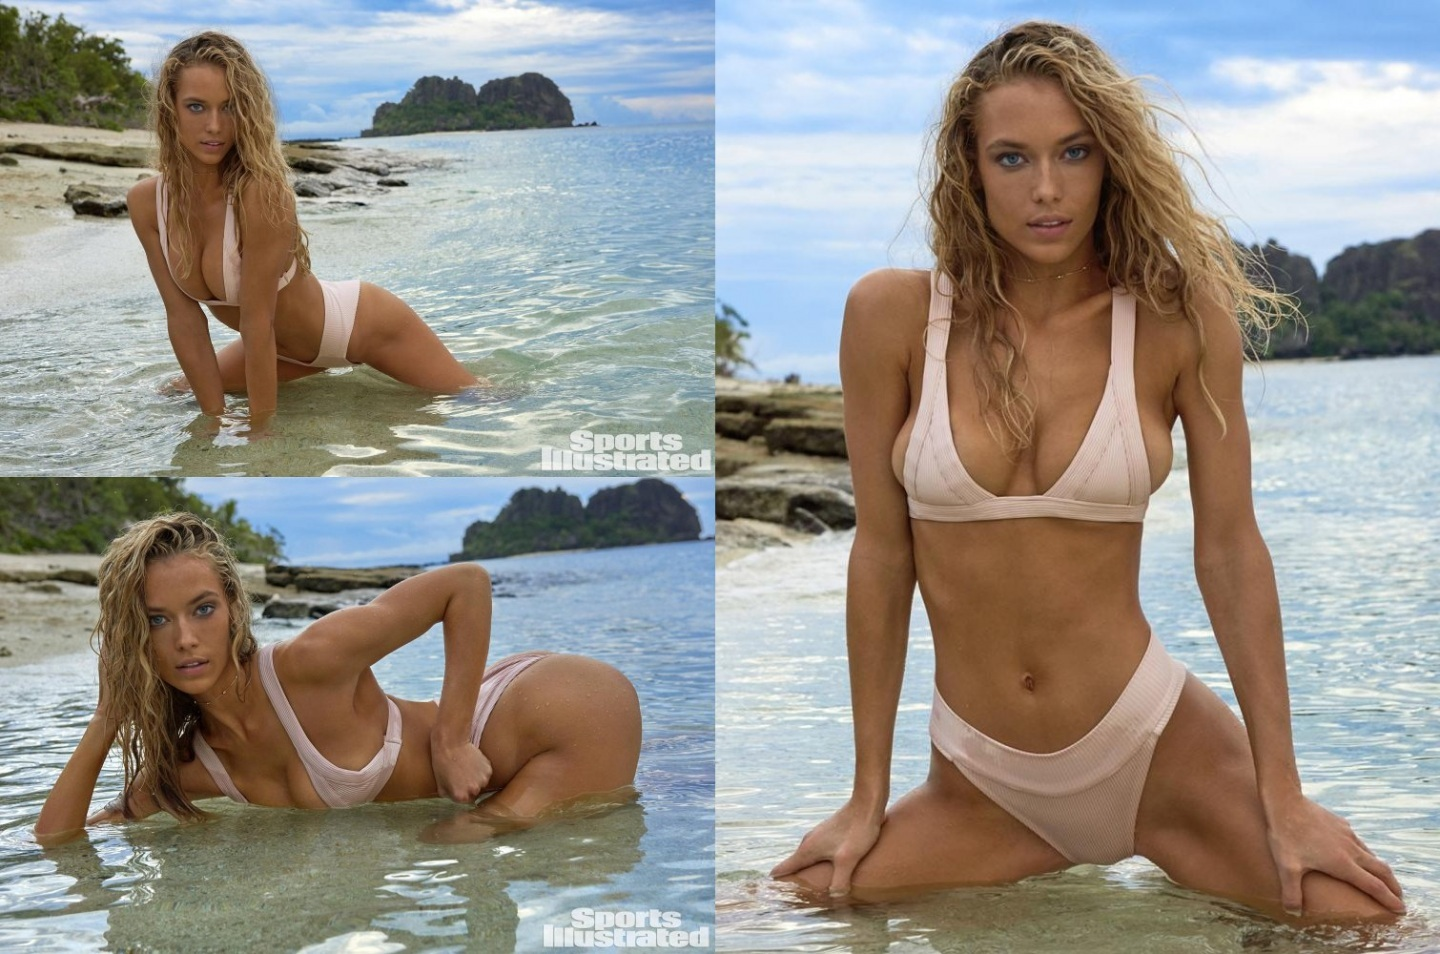 Sports Illustrated Swimsuit Model Hannah Ferguson Hannah Ferguson